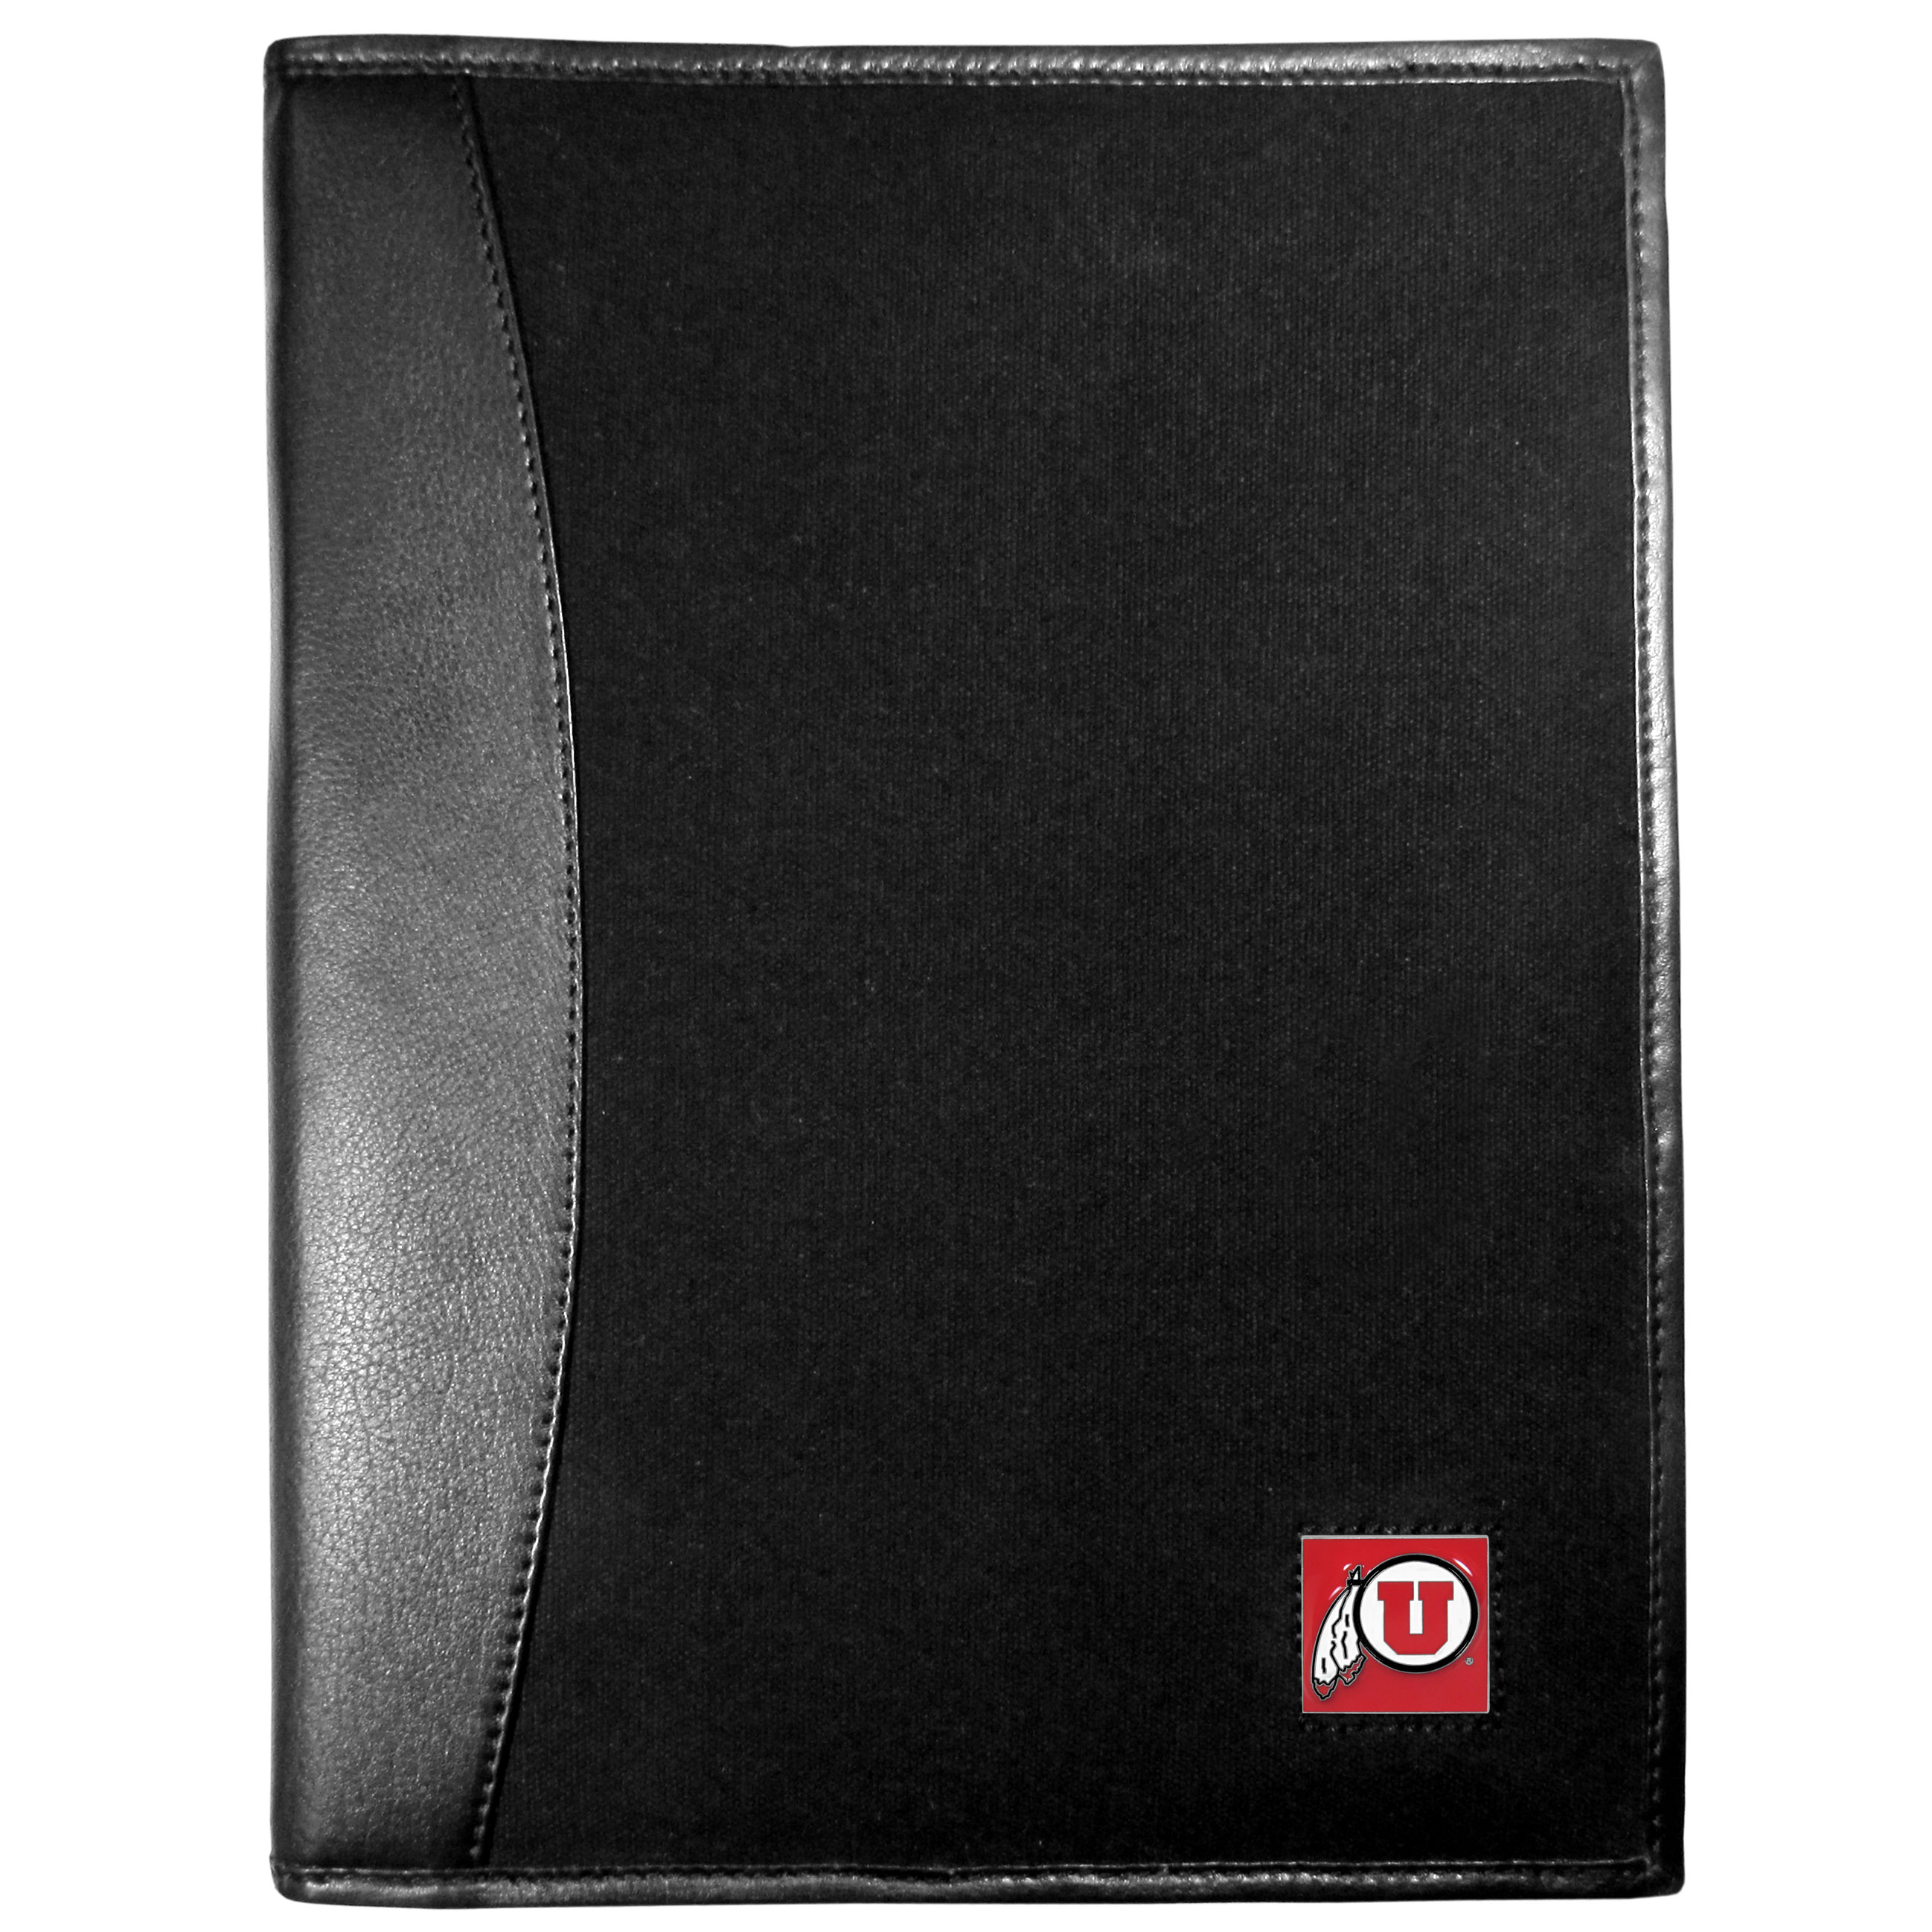 Utah Utes Leather and Canvas Padfolio - Our leather and canvas padfolio perfectly blends form and function. The attractive portfolio is bound in fine grain leather with an attractive canvas finish and the interior is a soft nylon. This high quality business accessory also features a fully cast metal Utah Utes emblem that is subtly set in the corner of the organizer. It is packed with features like 6 card slots for badges, business cards, hotel keys or credit cards and ID with a large pocket for loose papers and a writing tablet slot making it a must-have for the professional on the go.